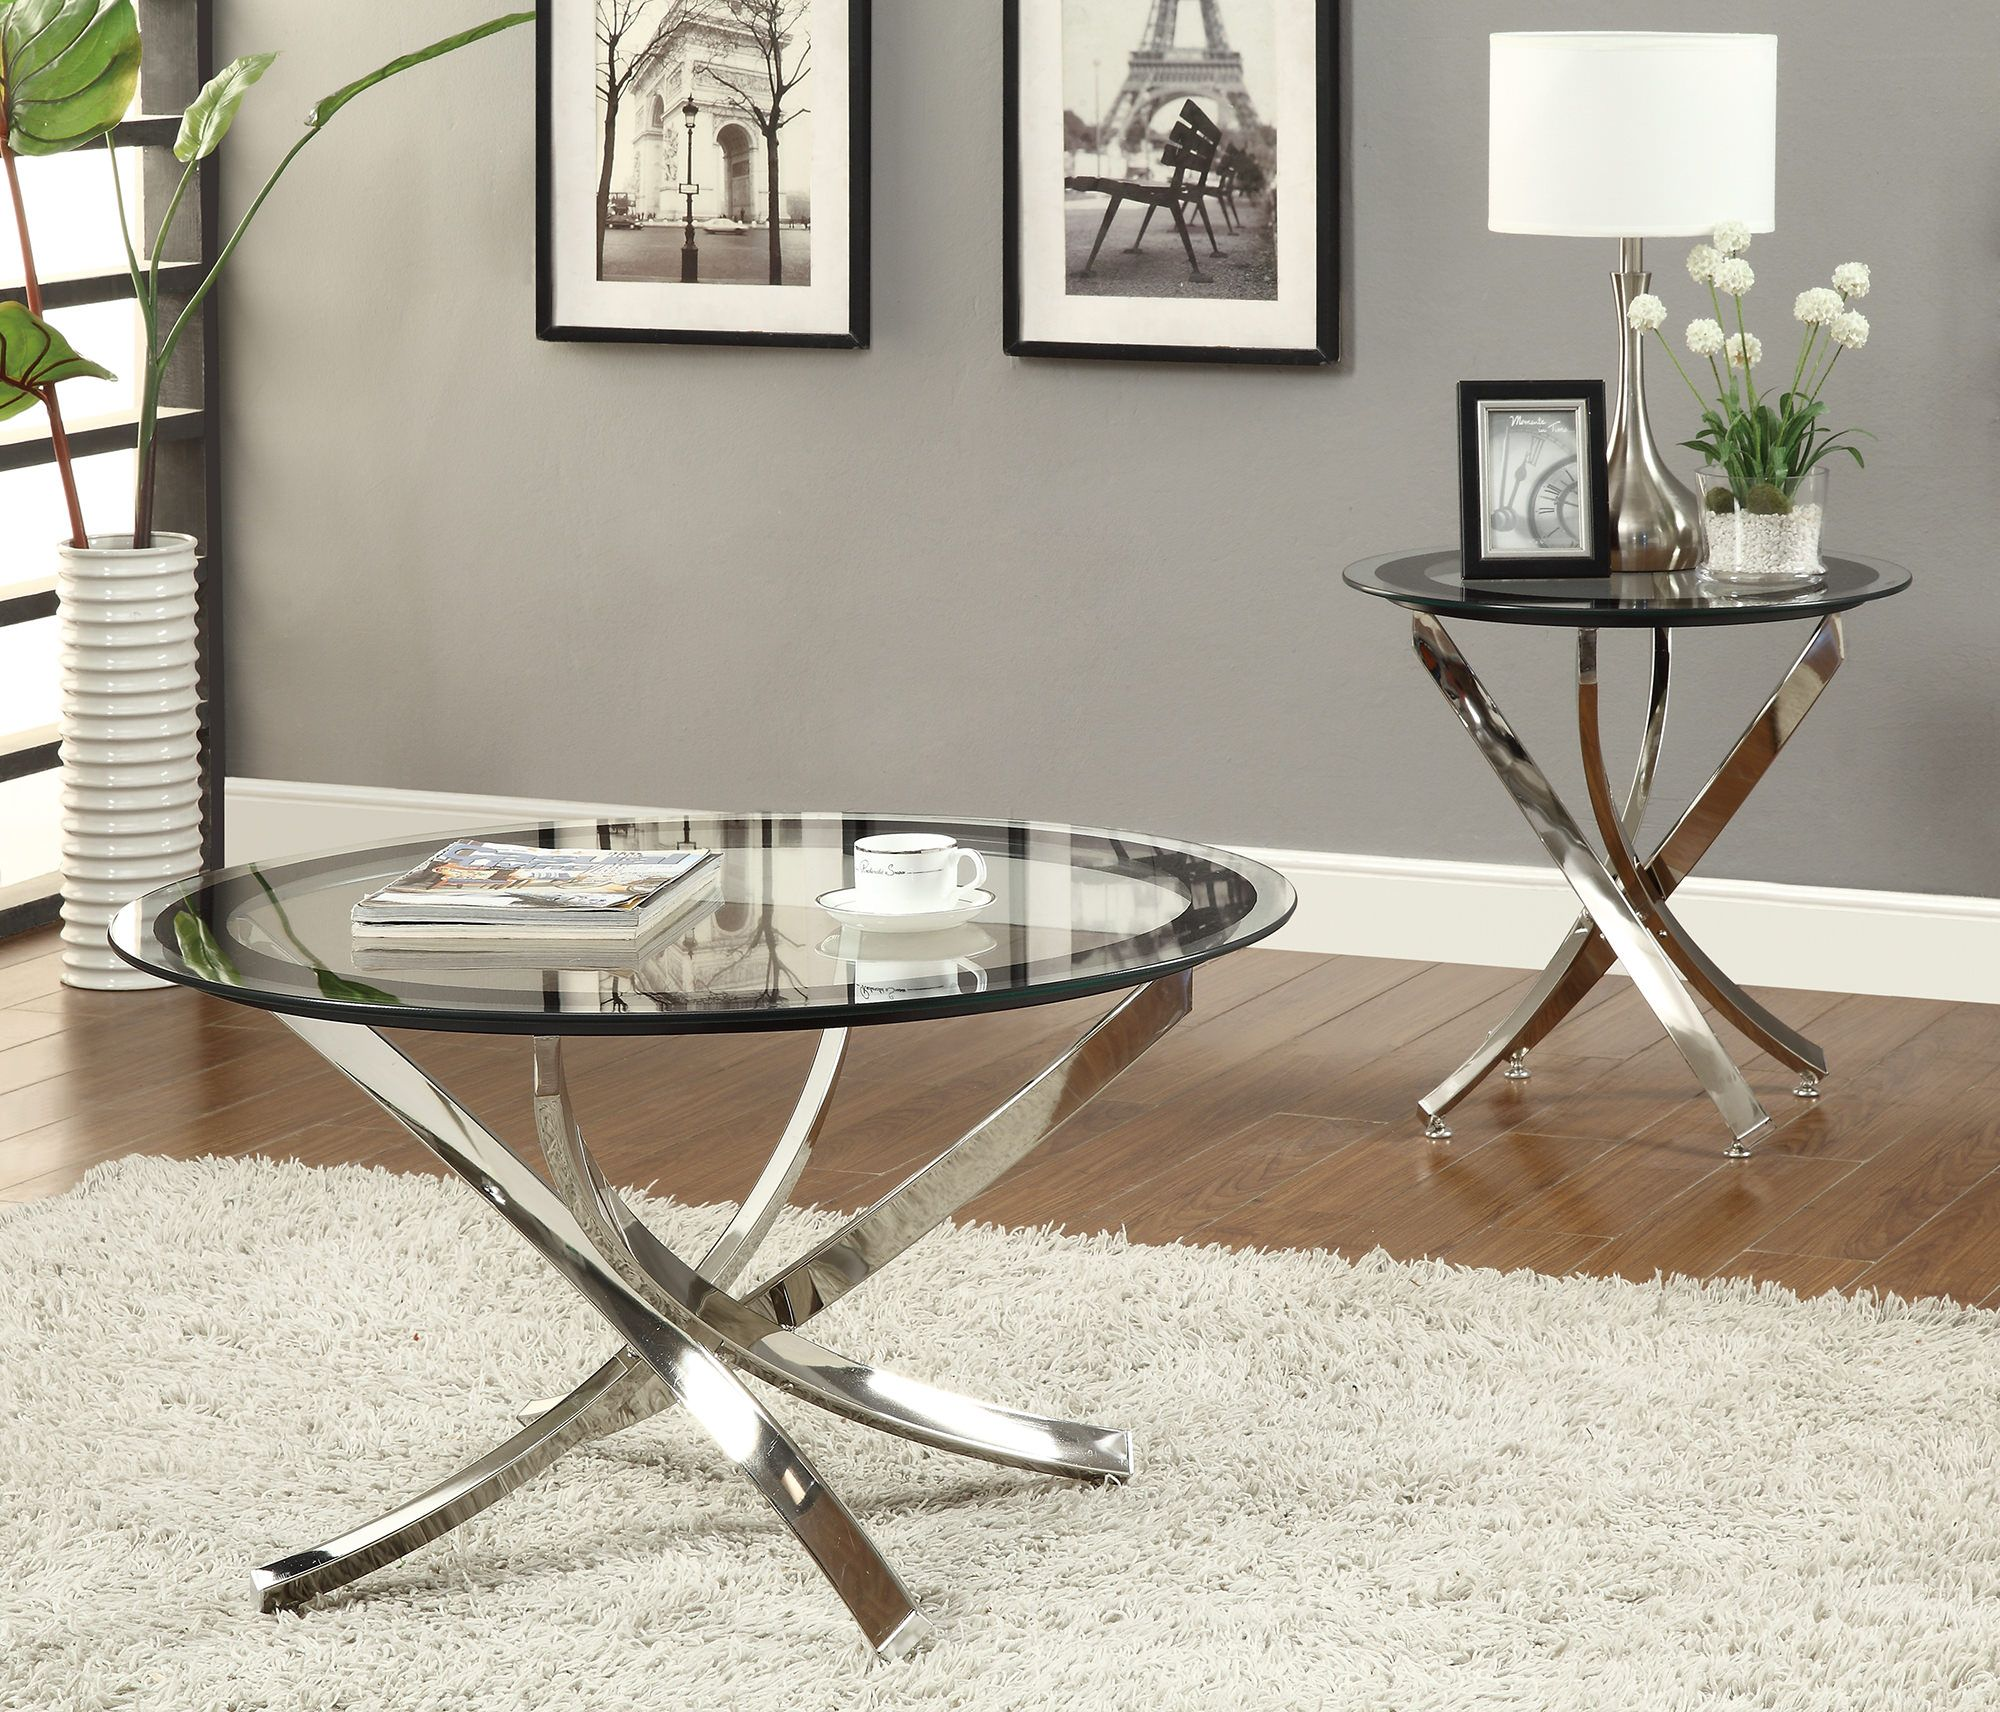 cocktail table tempered glass top home vision board end tables contemporary round coffee small side set macys furniture catalog replacement for patio bar ashley loft with storage